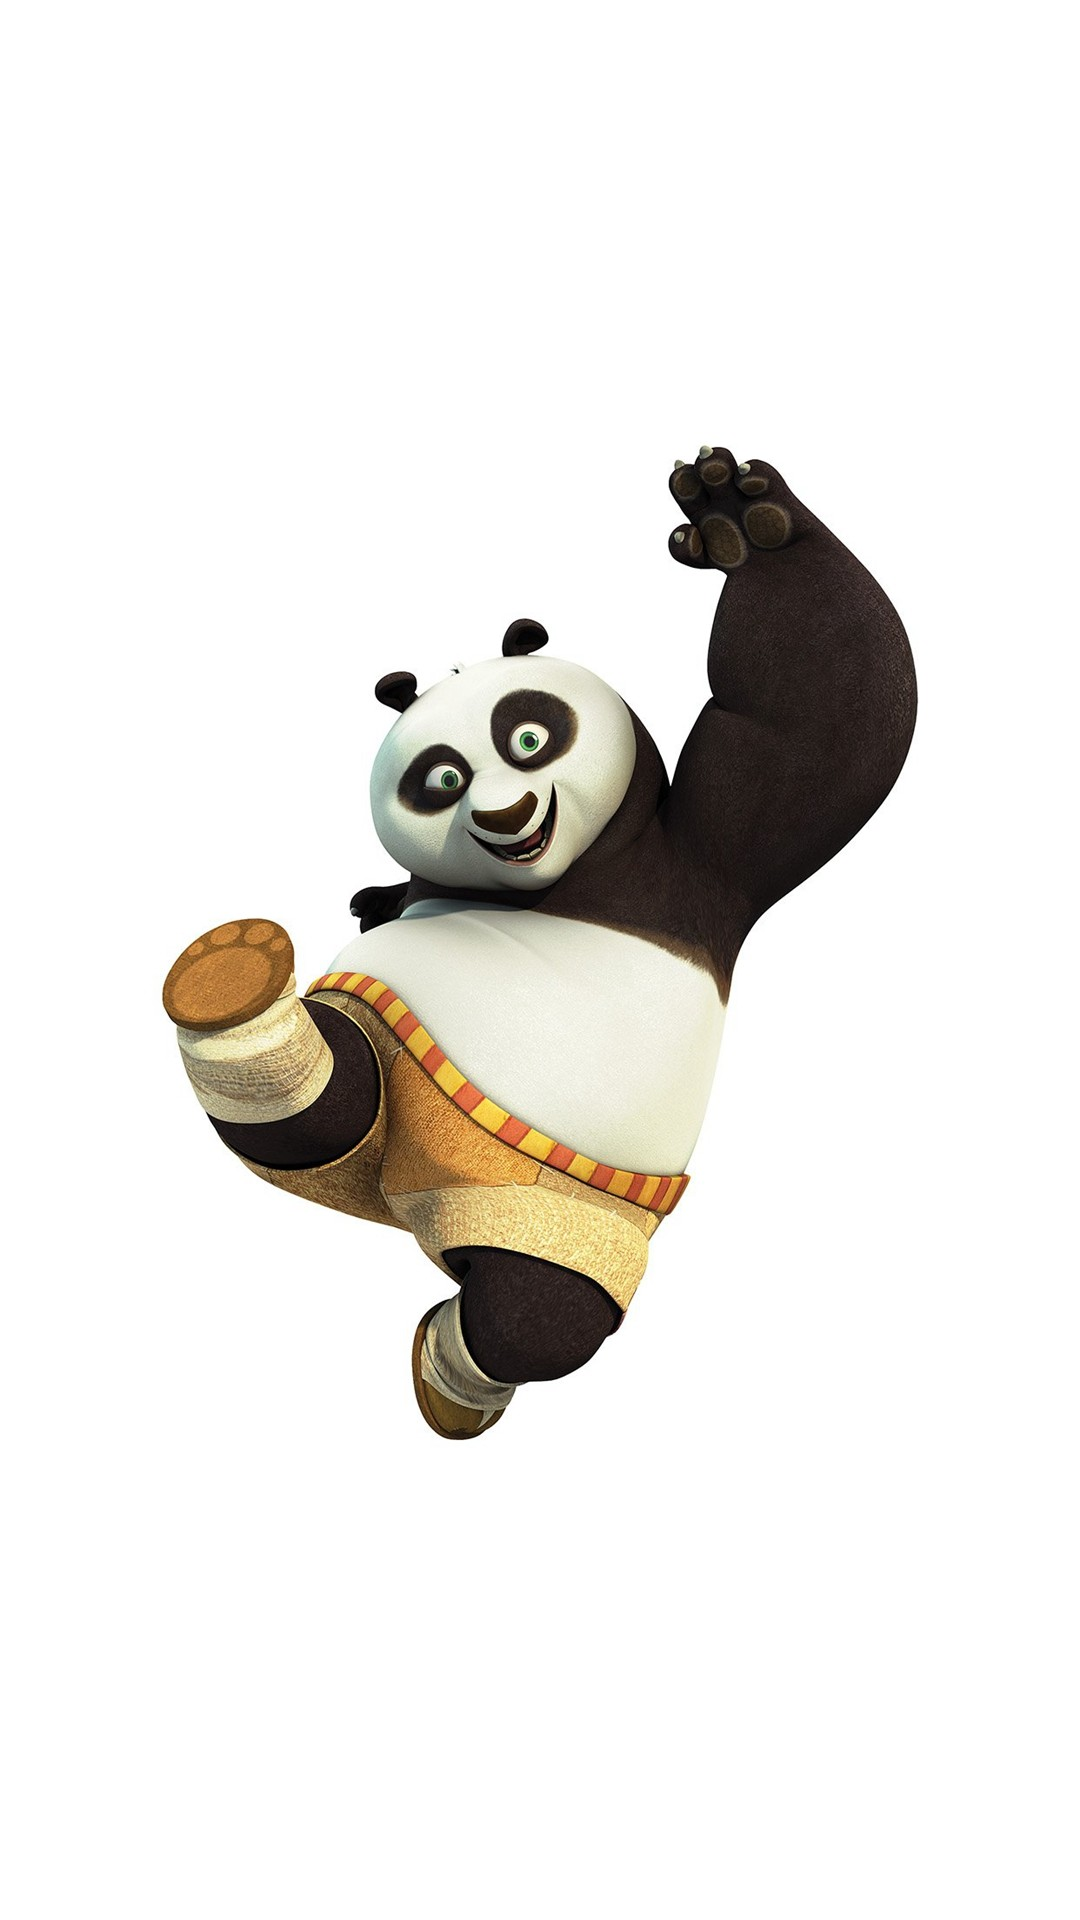 1080x1920 Kungfu Panda Animal Dreamworks Kick Cute Anime #iPhone #6 #plus #wallpaper